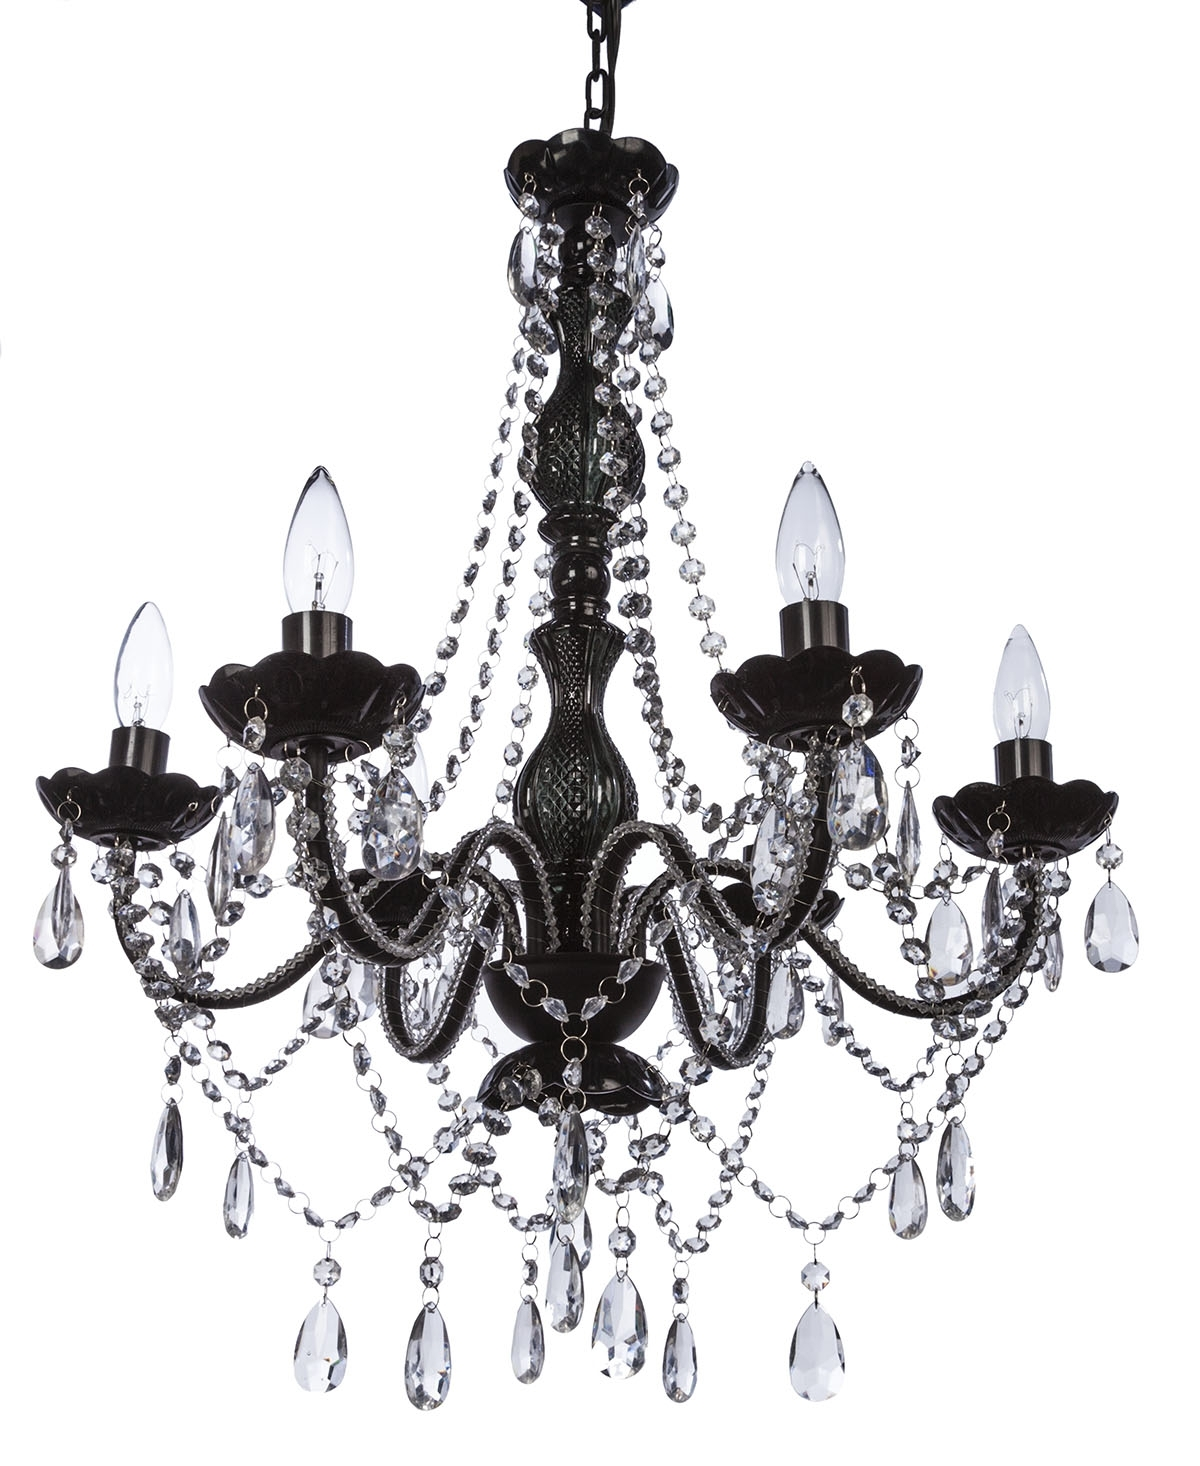 Gypsy Color For Widely Used Gypsy Chandeliers (Gallery 11 of 20)